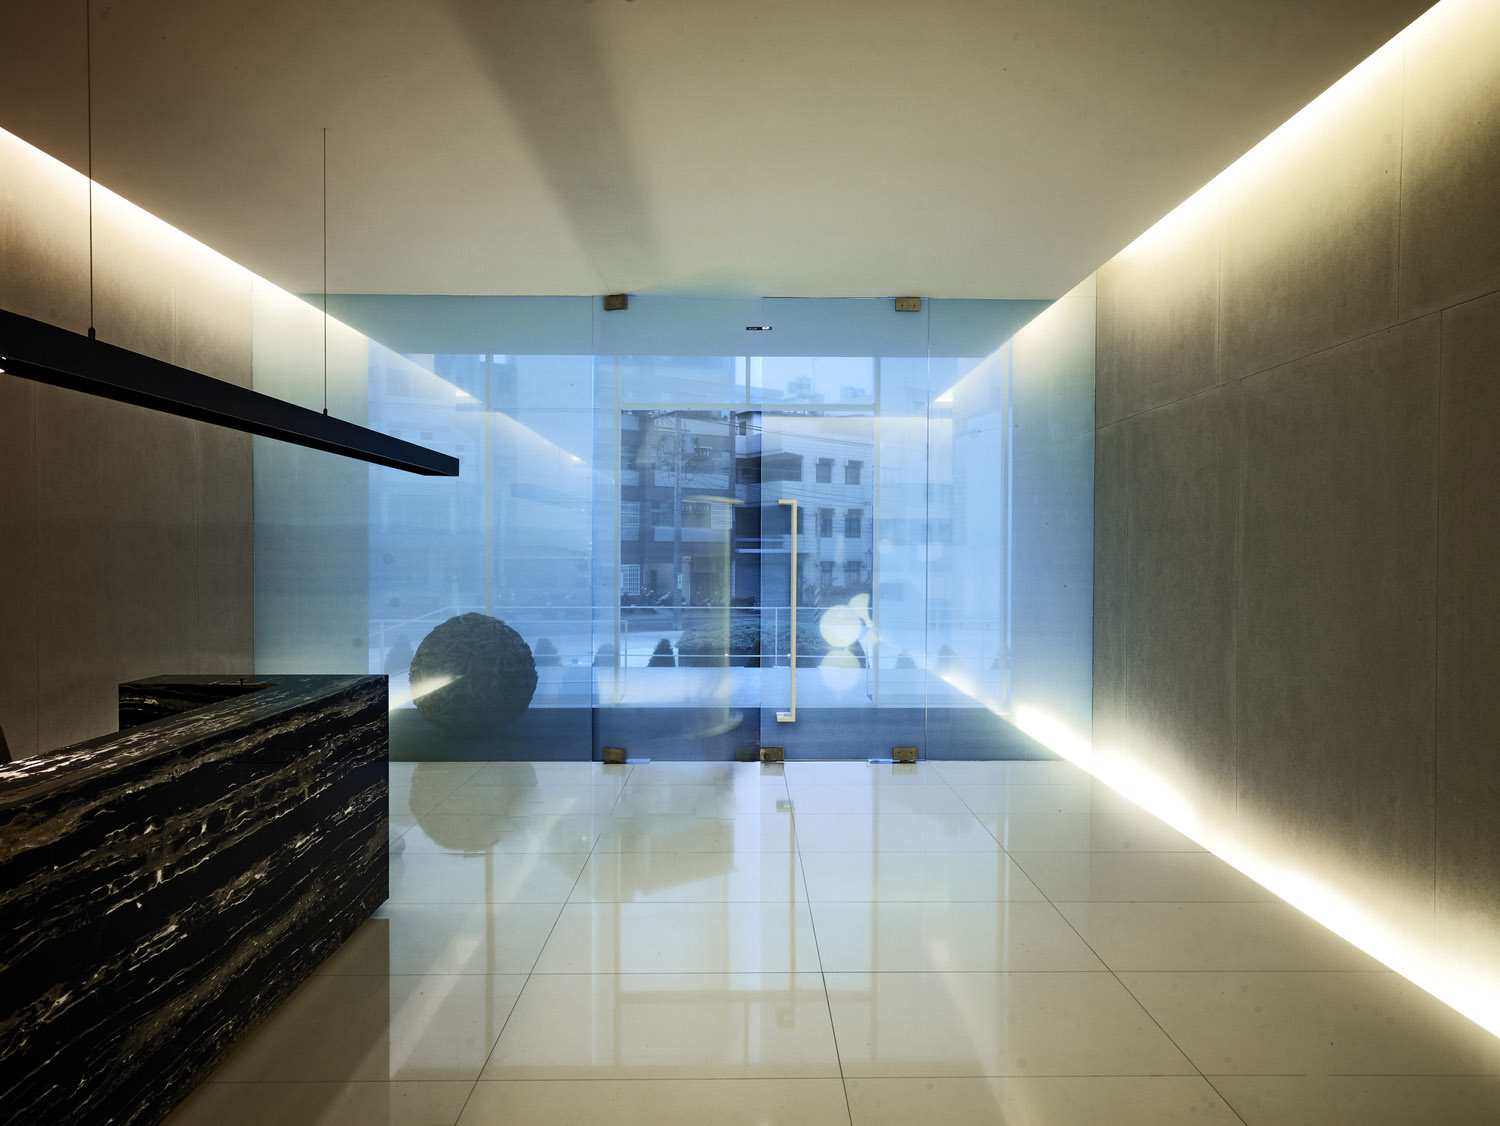 mm_Lightbox design by Hsuyuan Kuo Architect & Associates_12